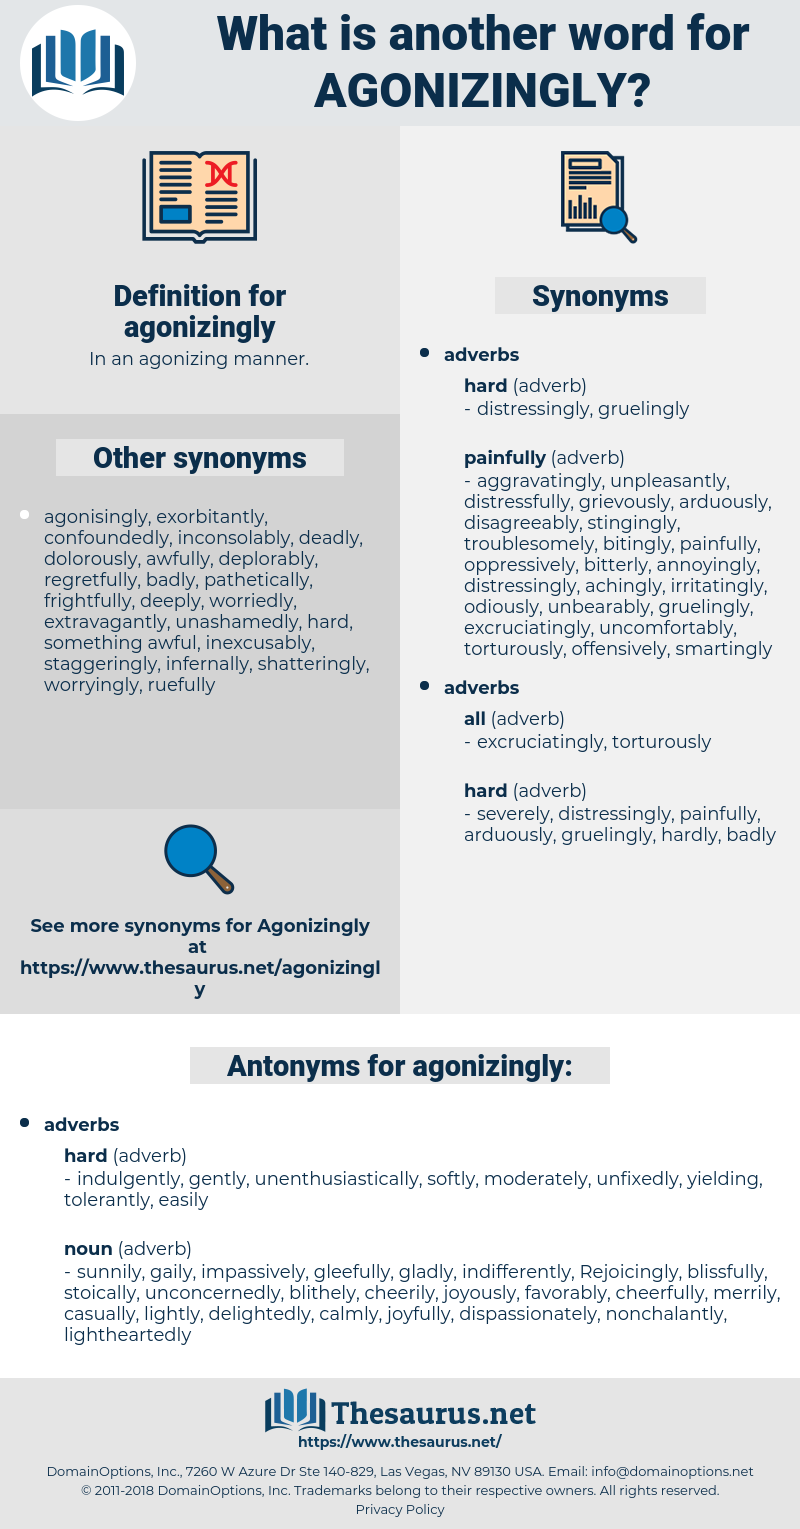 agonizingly, synonym agonizingly, another word for agonizingly, words like agonizingly, thesaurus agonizingly